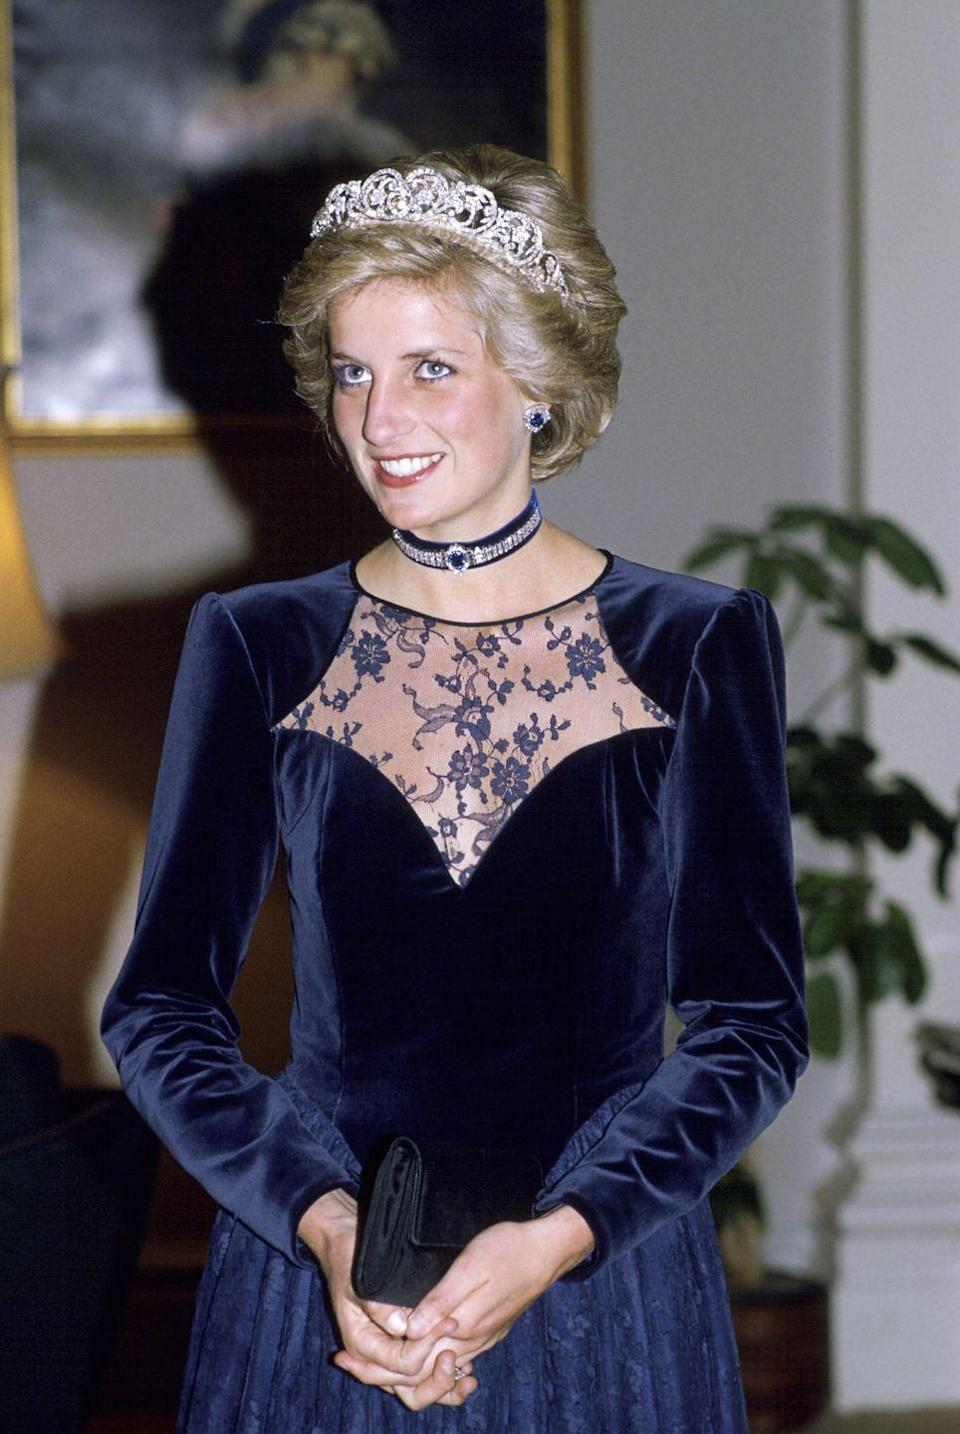 <p>Princess Diana opted for shades of navy blue at a state dinner in Melbourne, Australia. The princess chose a navy velvet gown with lace detailing, a choker necklace and earrings from the sapphire and diamond Saudi suite, and the Spencer tiara. </p>